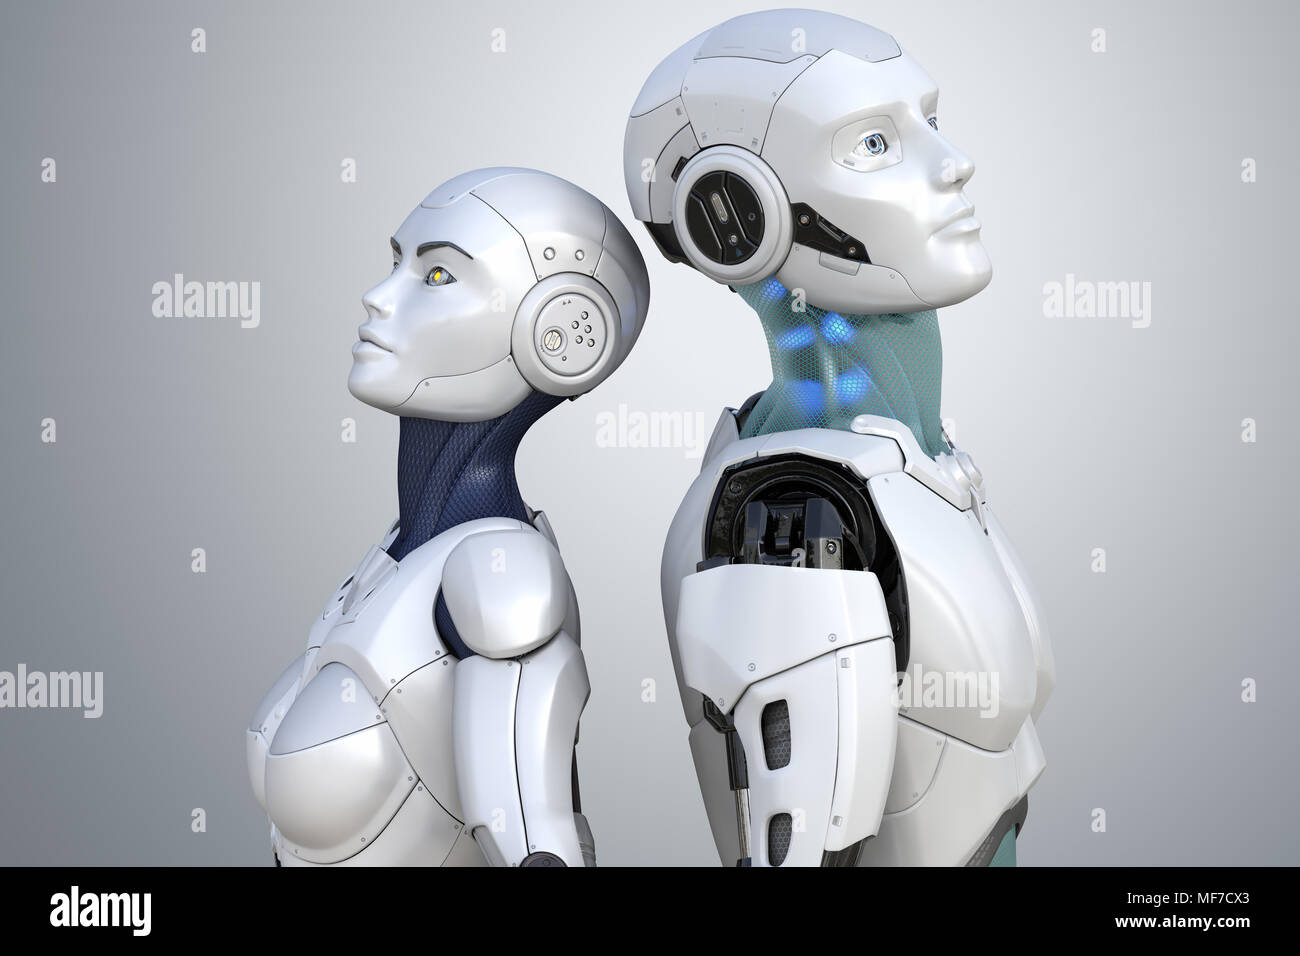 Female and male robots. 3D illustration - Stock Image